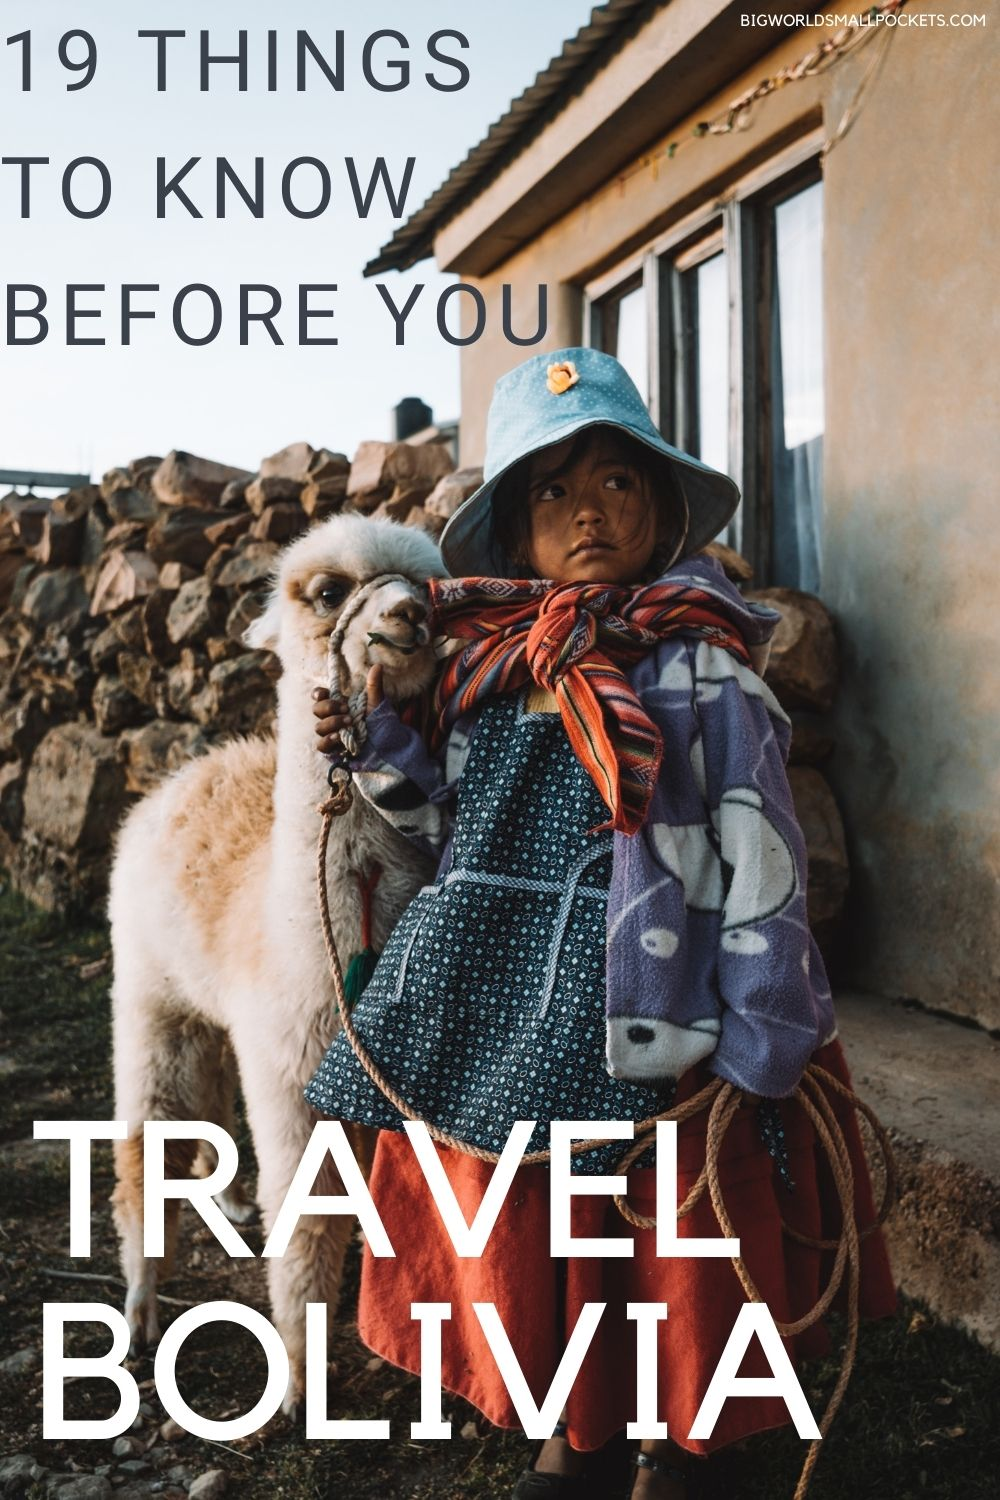 19 Things to Know Before You Travel Bolivia